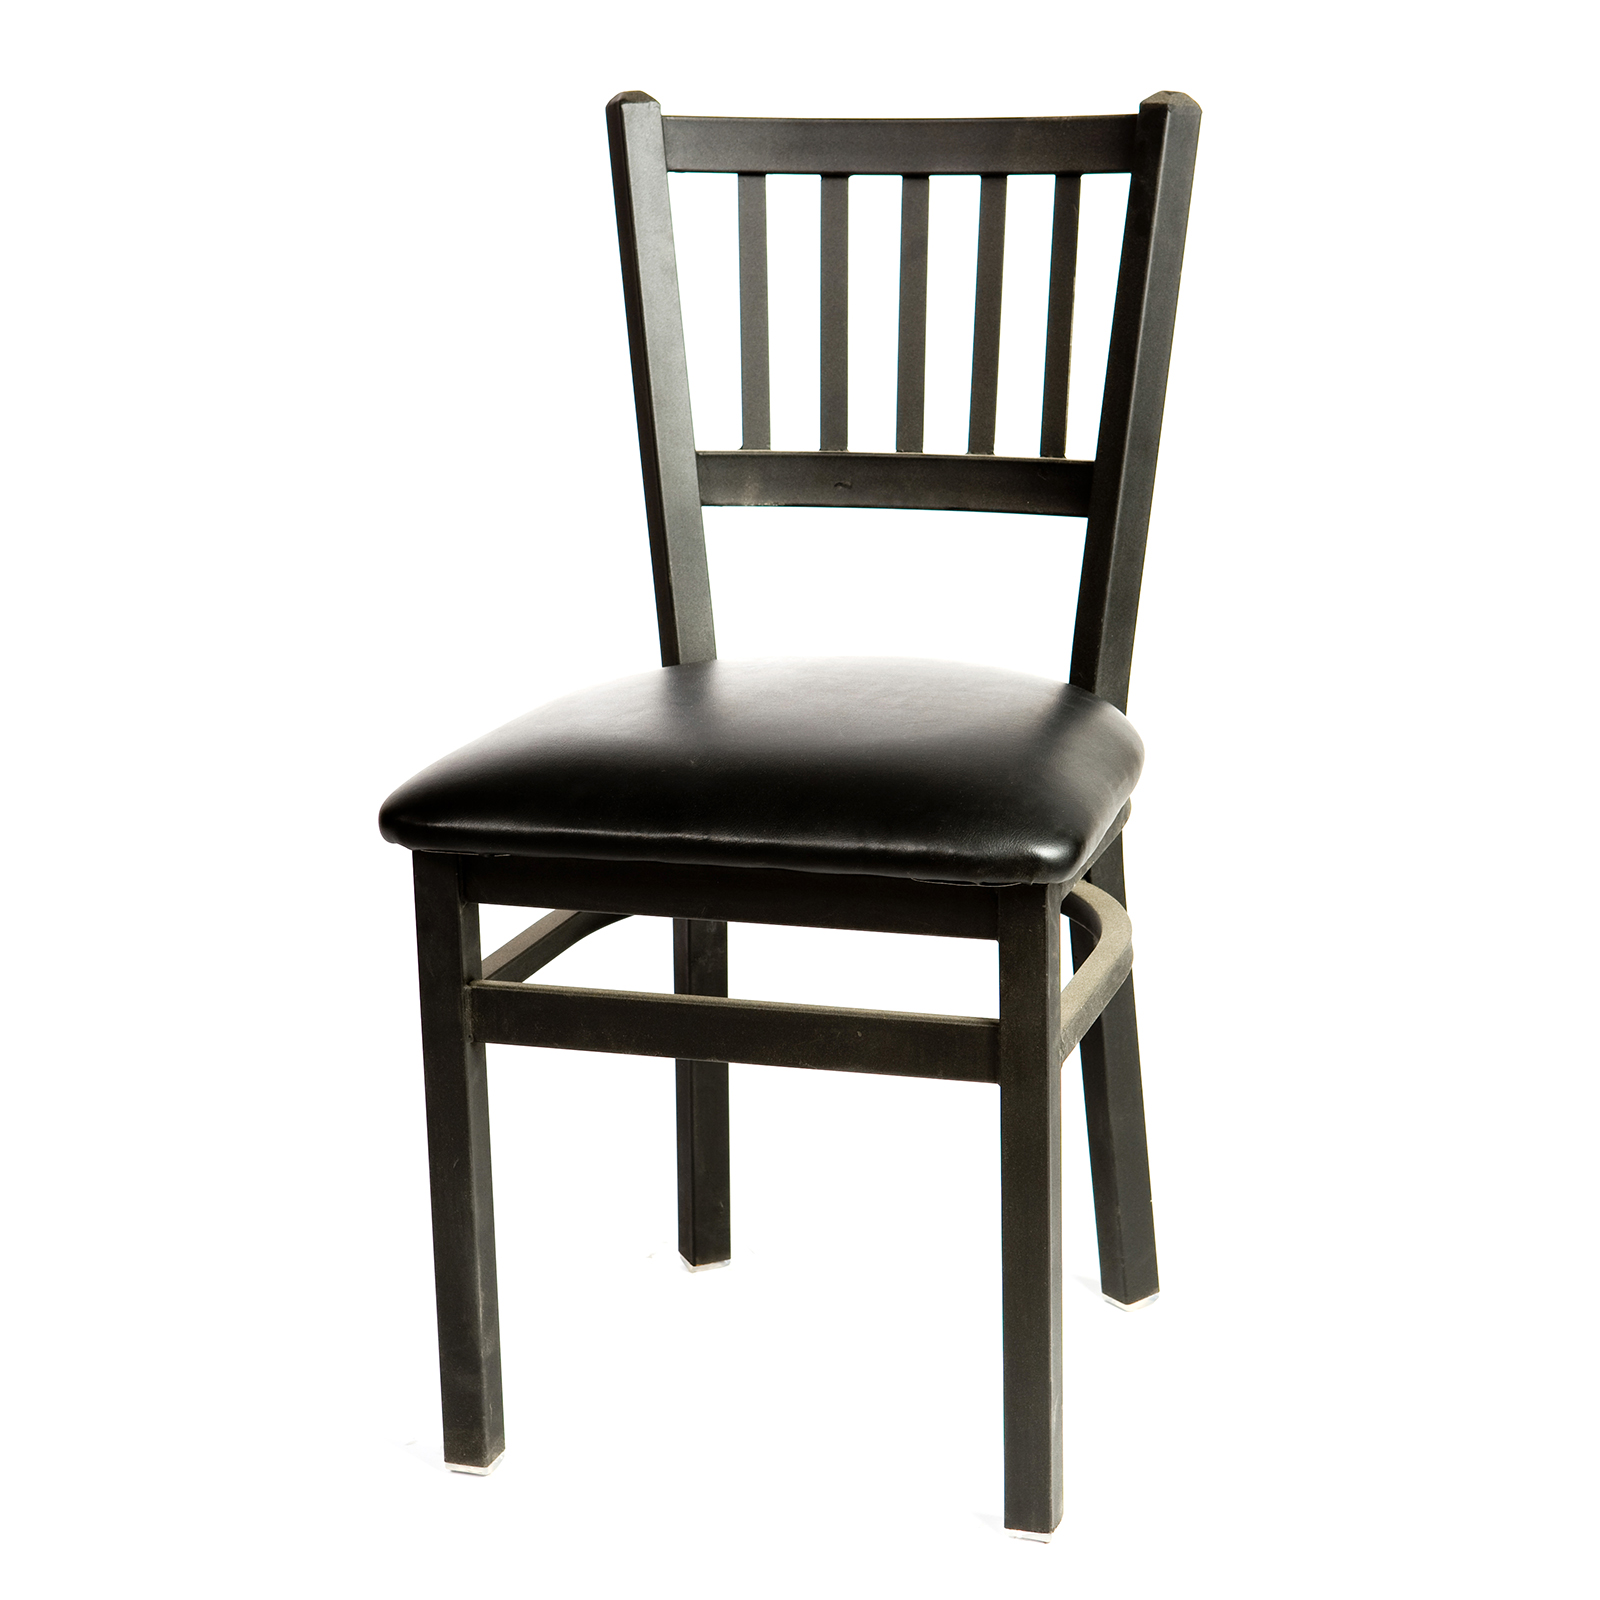 Oak Street SL2090 chair, side, indoor